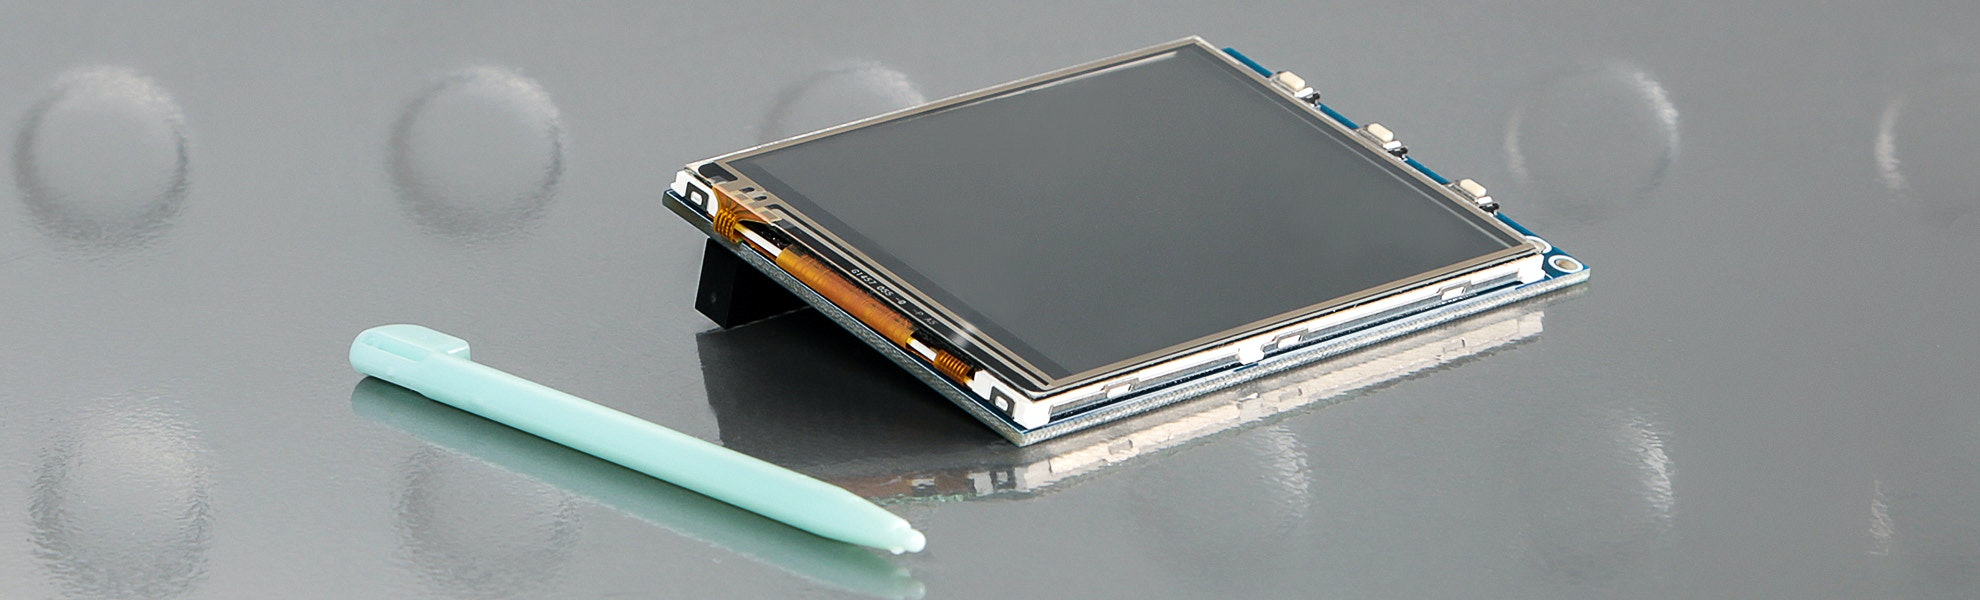 """Seeed 3.2"""" TFT Touch Screen for Raspberry Pi"""